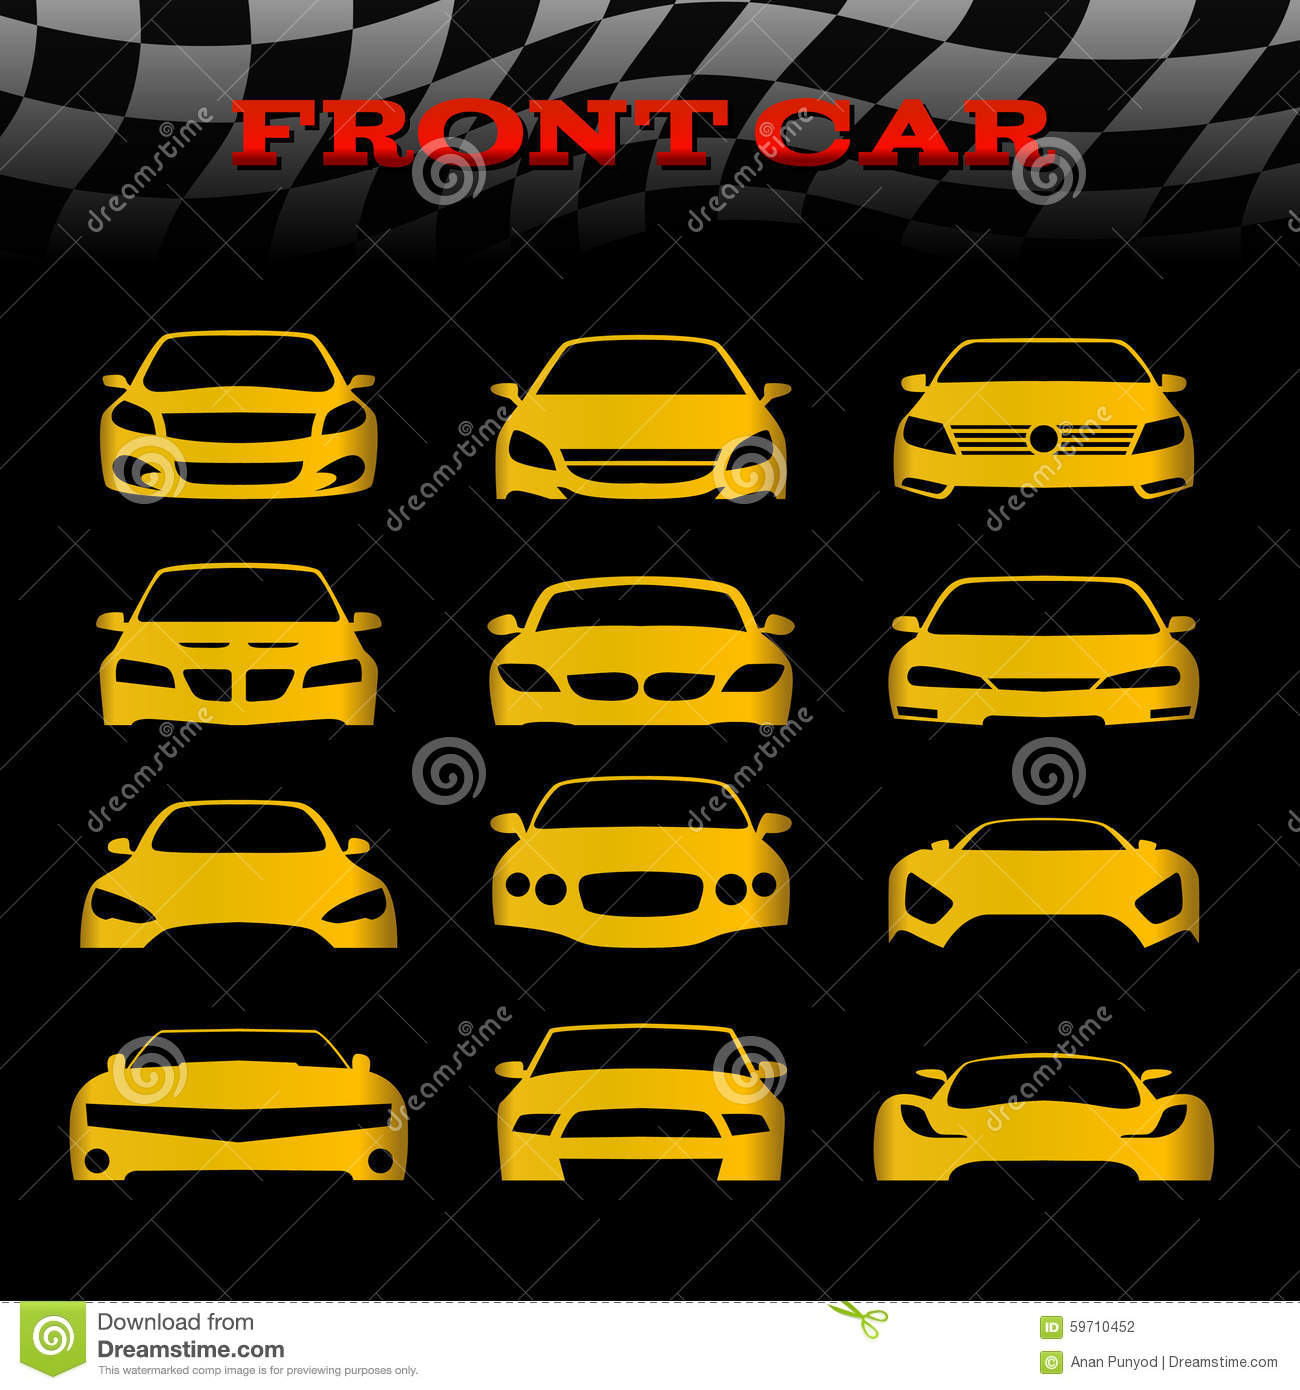 Design car flags - Yellow Front Body Car And Checkered Flags Vector Set Design